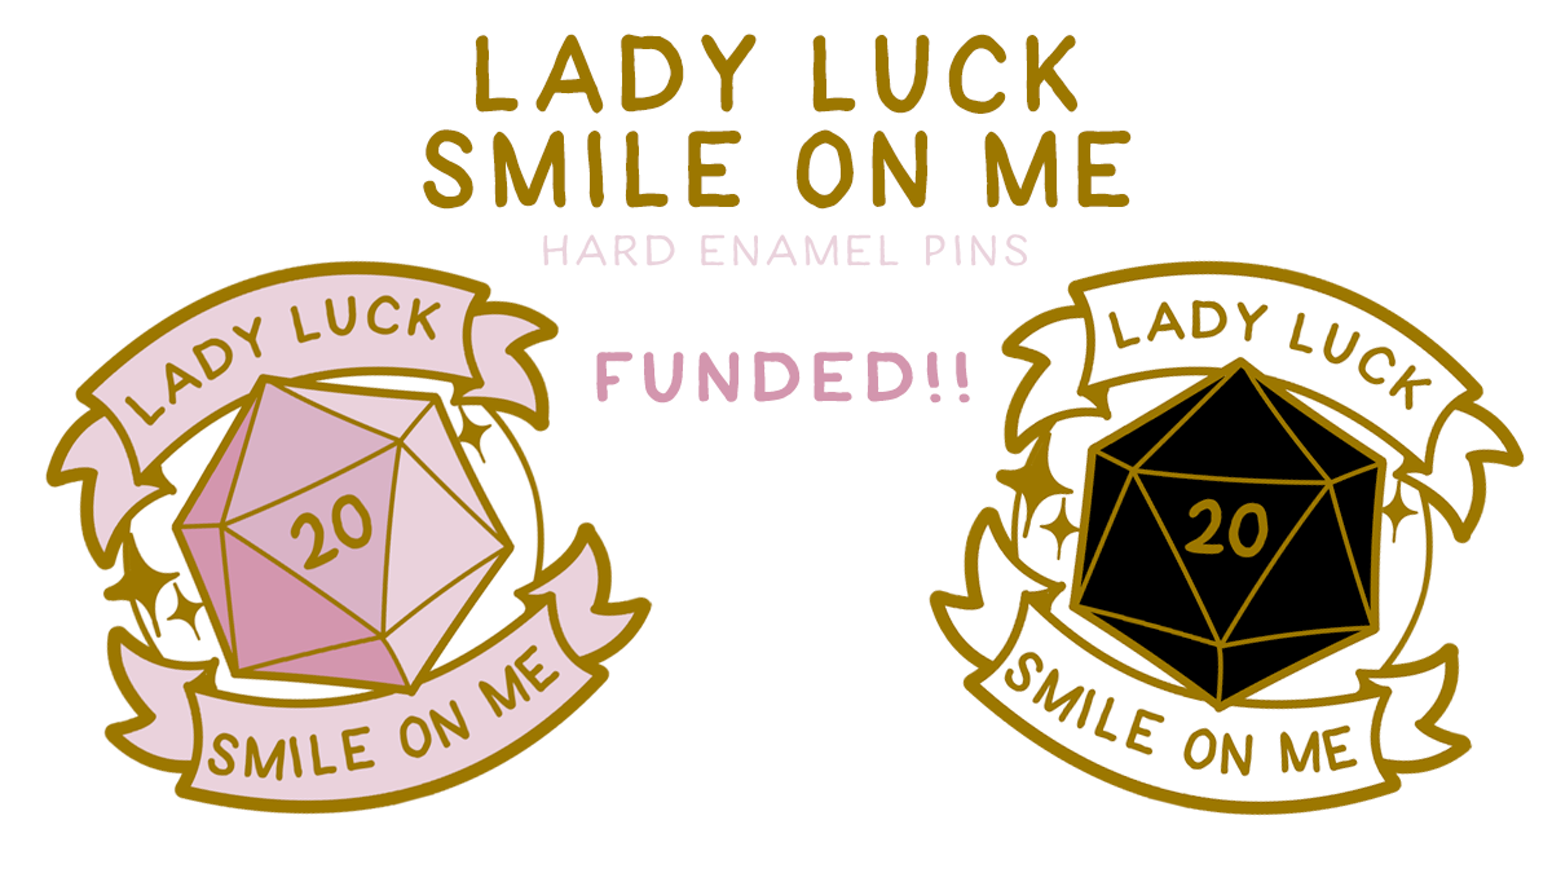 Lady Luck Smile on Me Enamel Pin by Lilly Higgs — Kickstarter